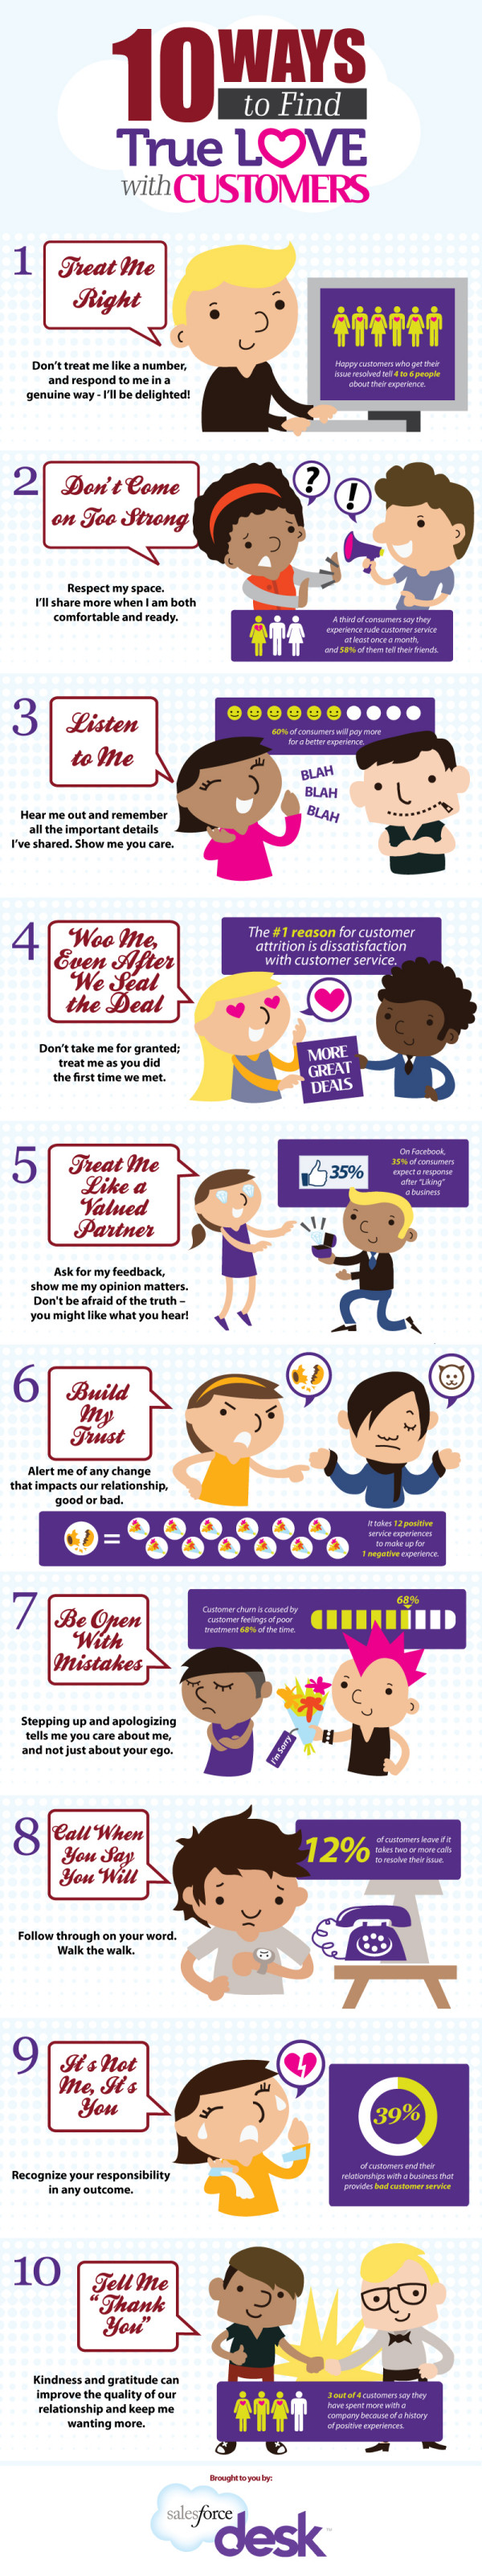 customer-service-training-infographic-e1375963079355